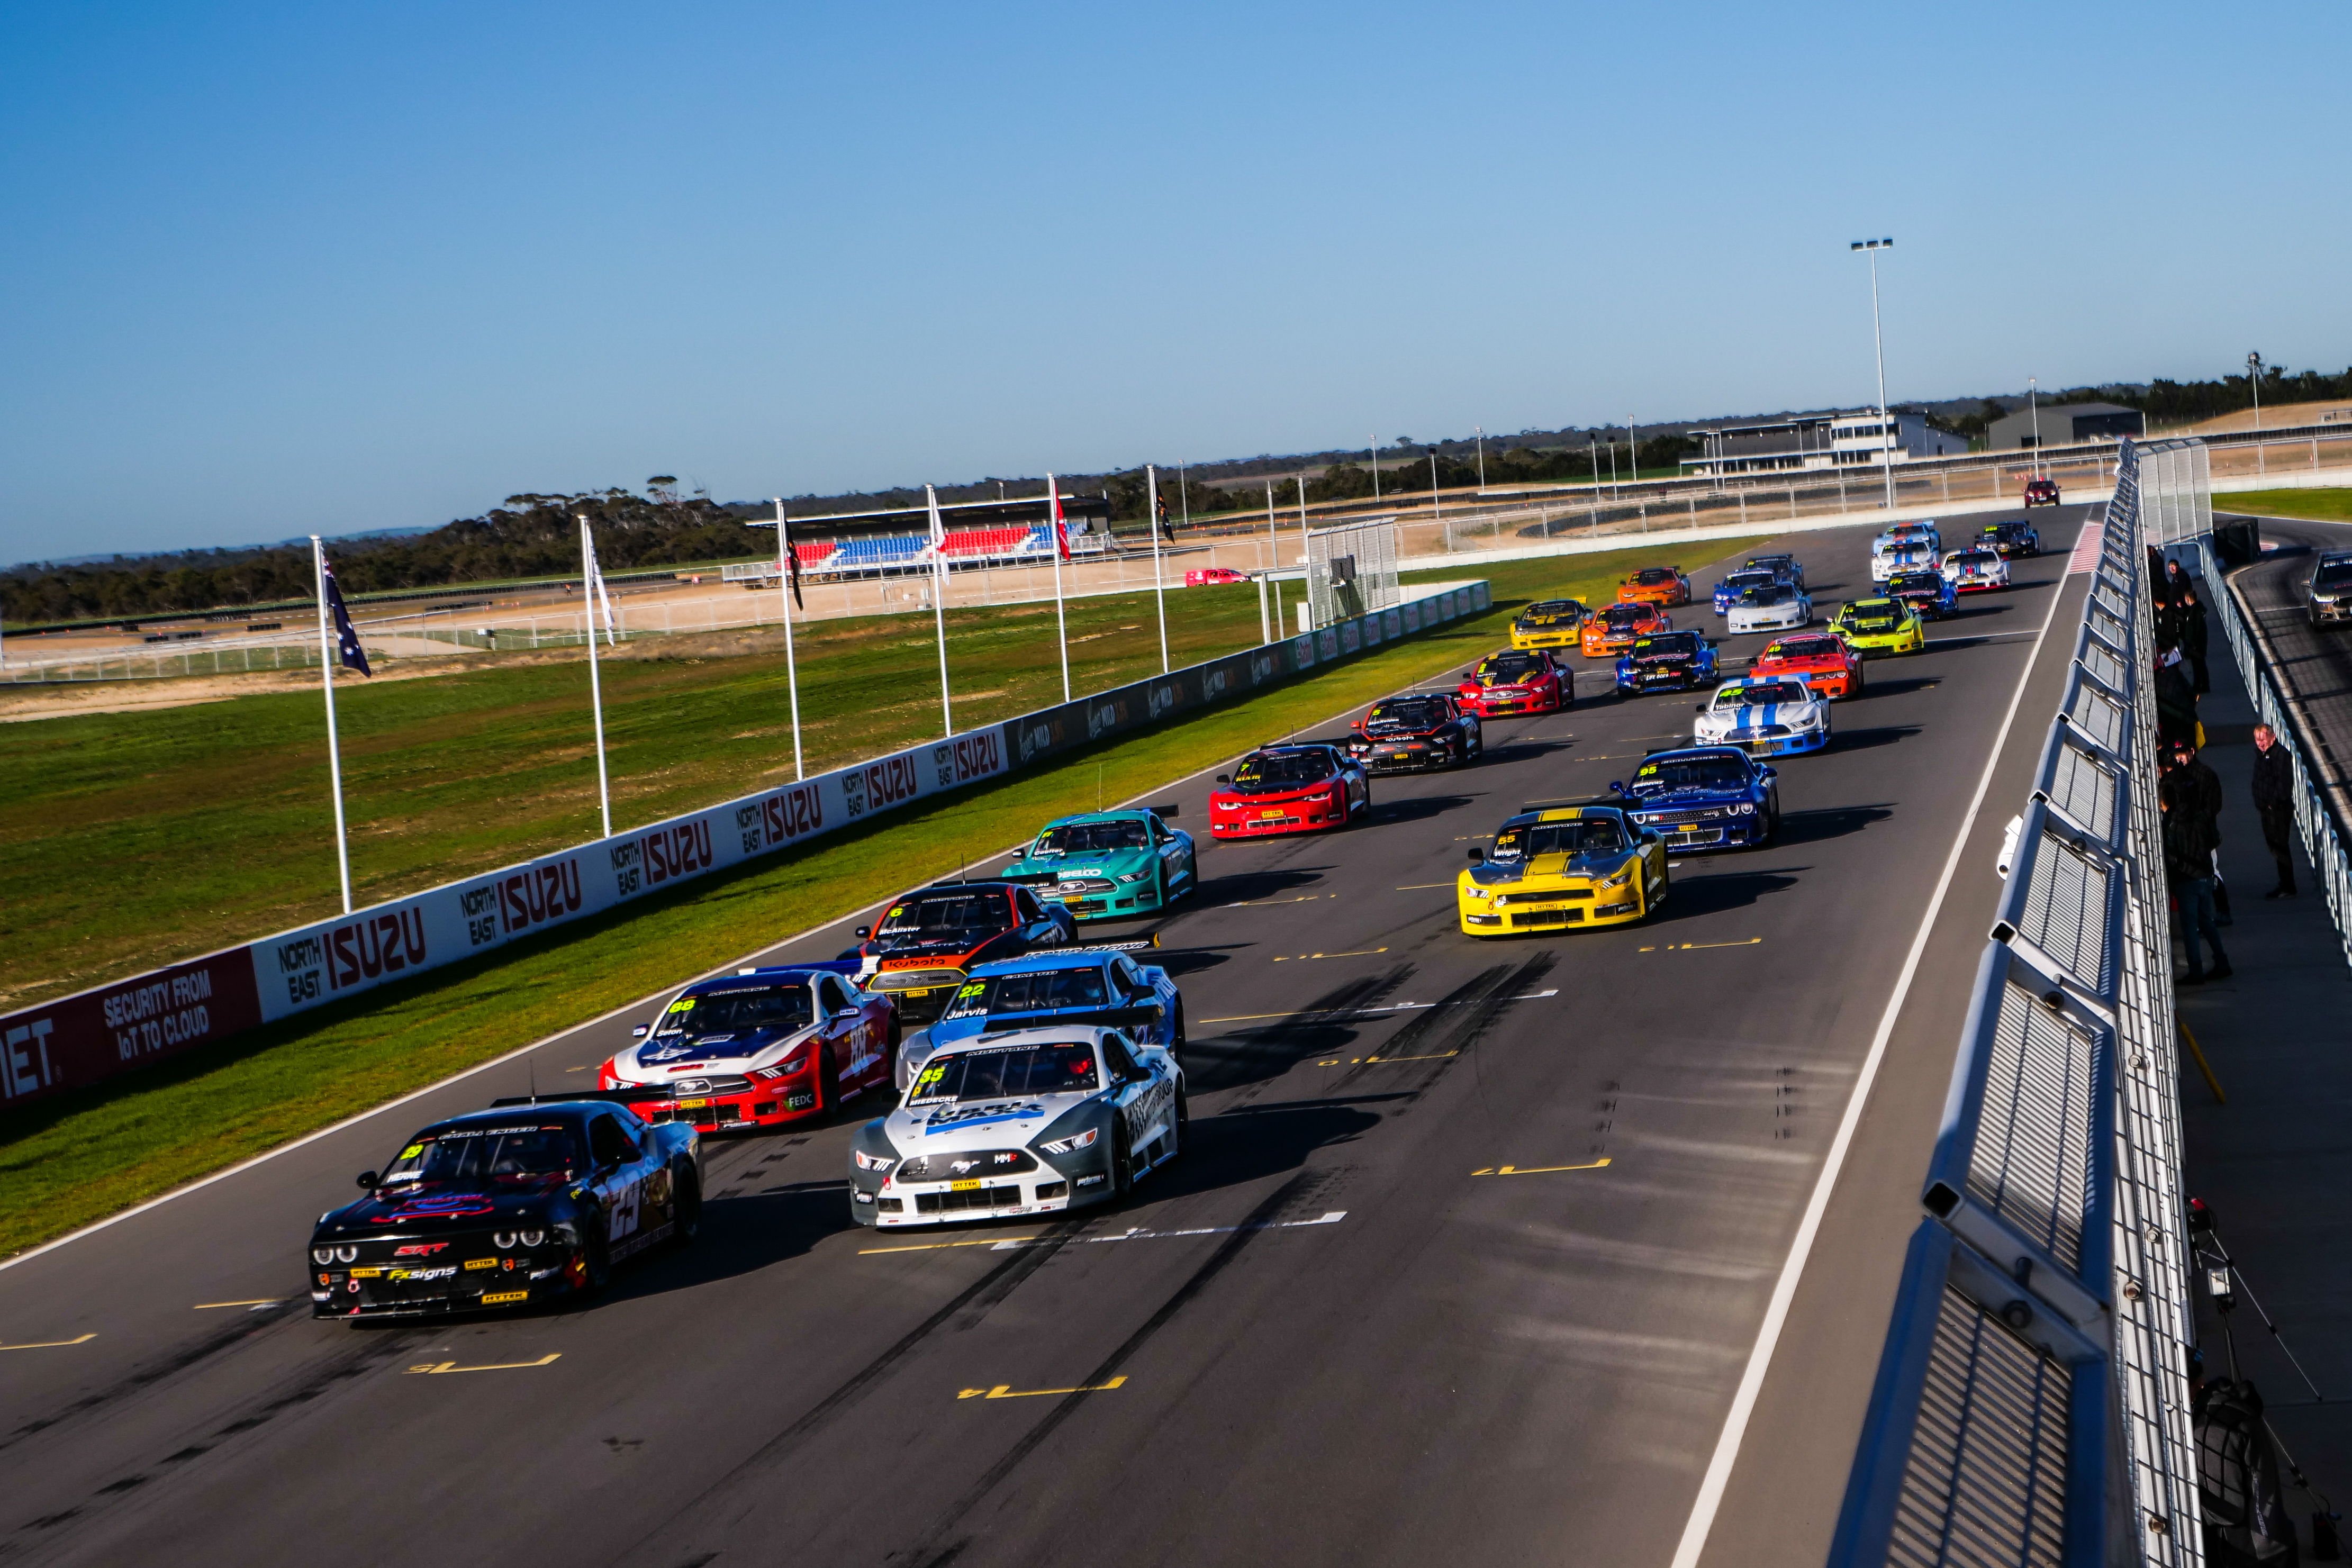 TA2 poised to join ARG events in 2020 - Speedcafe